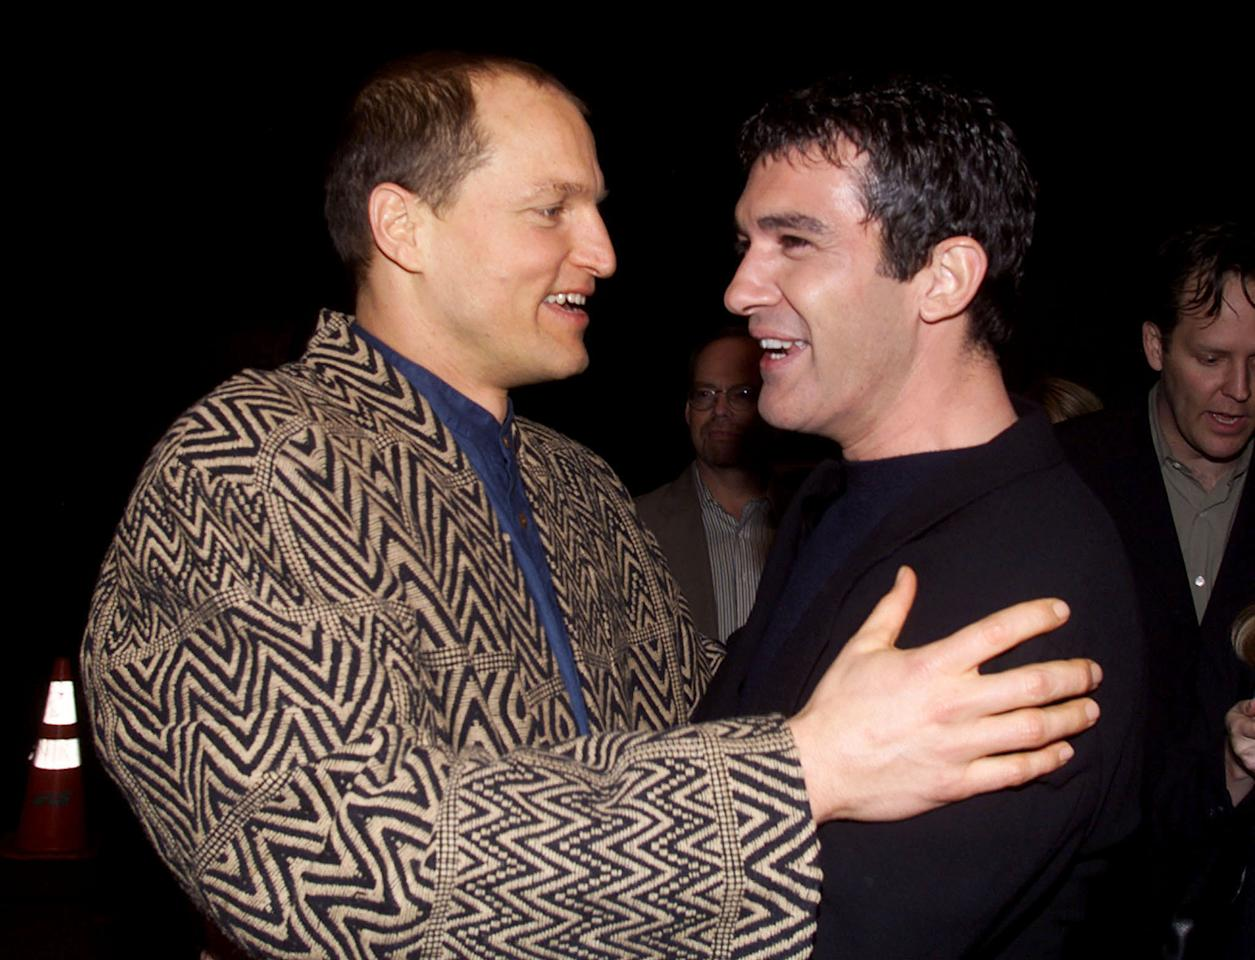 """Actors Antonio Banderas (L) and Woody Harrelson greet each other as they arrive at the premiere of their new film """"Play It To The Bone"""" January 10 in Hollywood. The film which, opens January 21 in the United States, is about two boxers as they travel to Las Vegas to fight for the first time."""